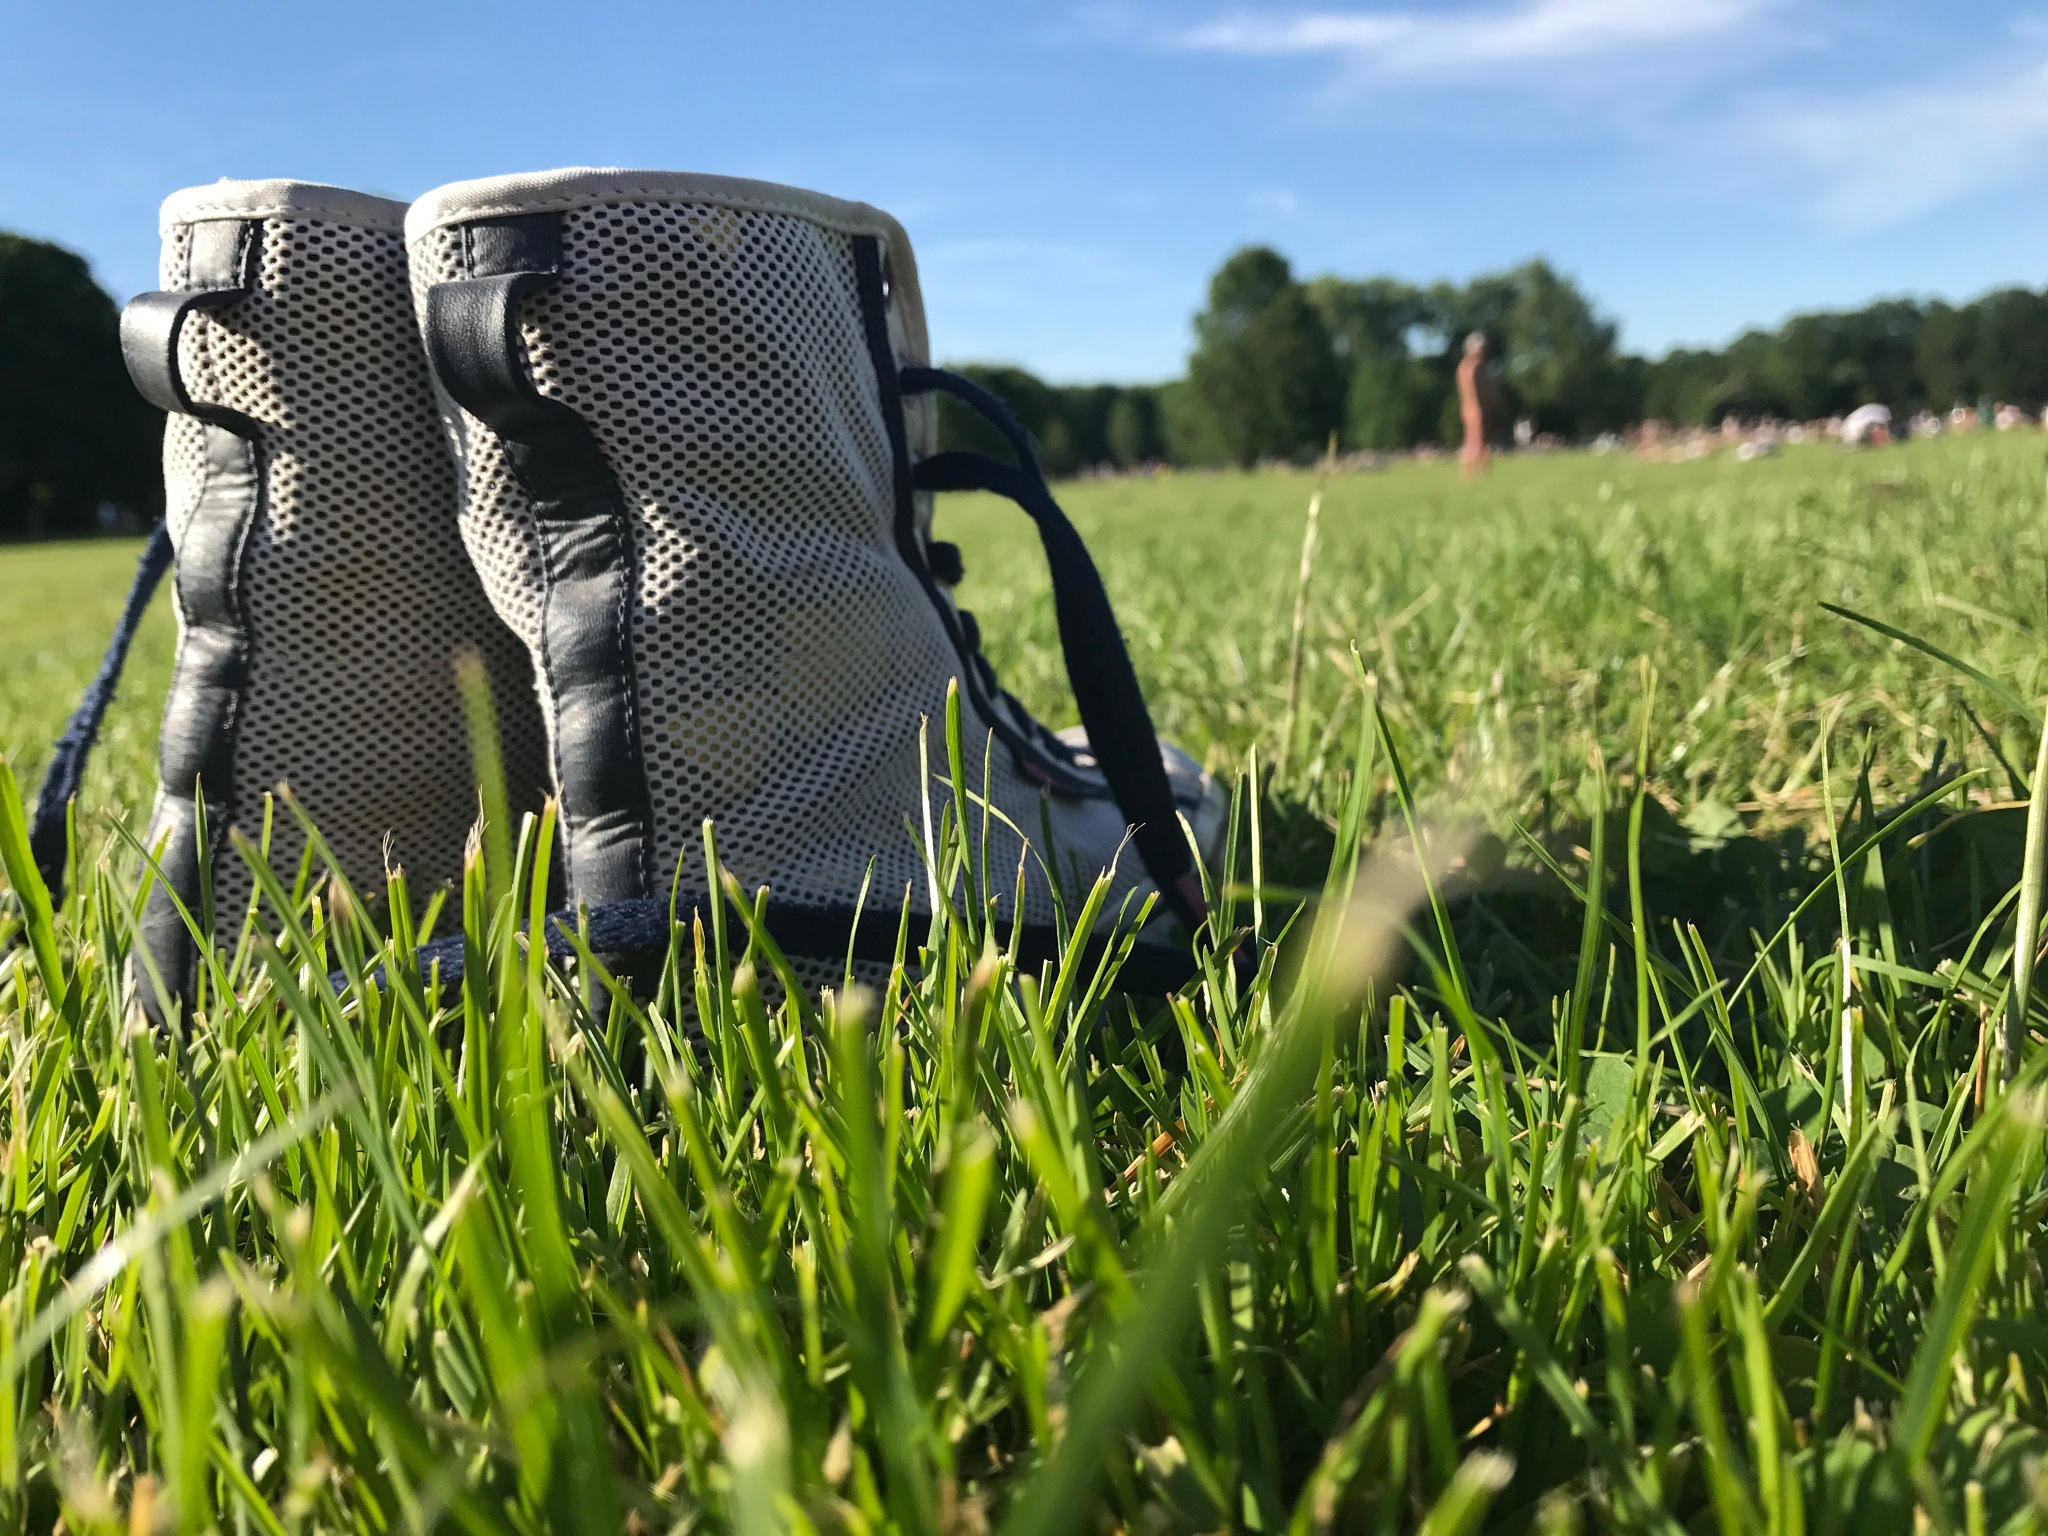 Green Grass and Adidas by Jäzzmin C.